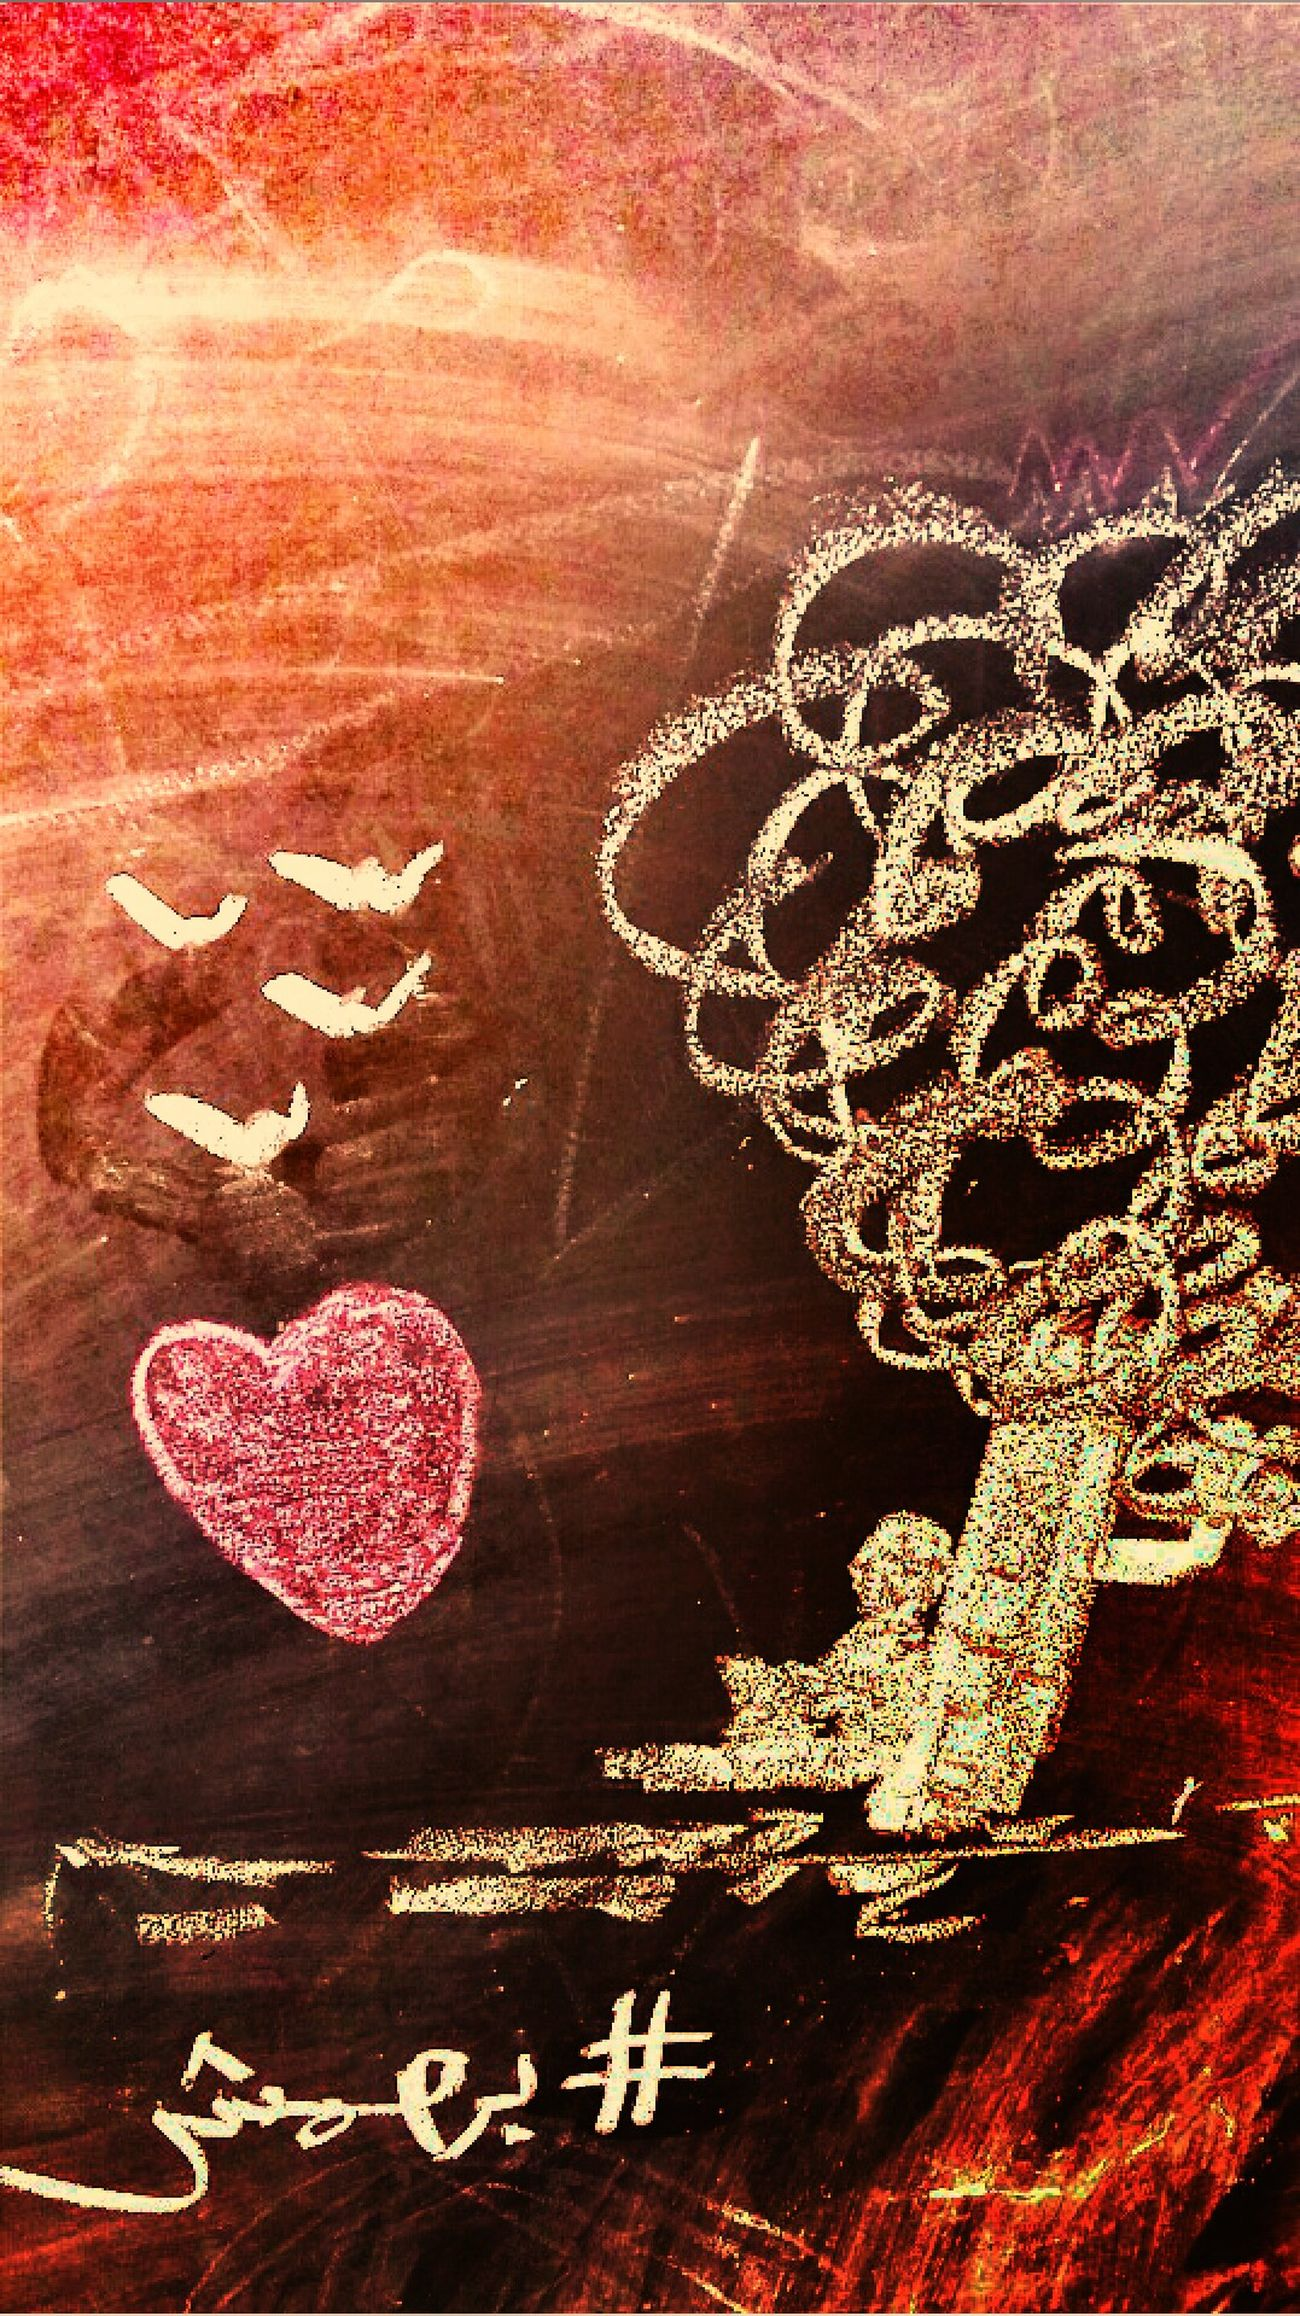 Heart Shape Love No People Close-up Backgrounds Day Outdoors